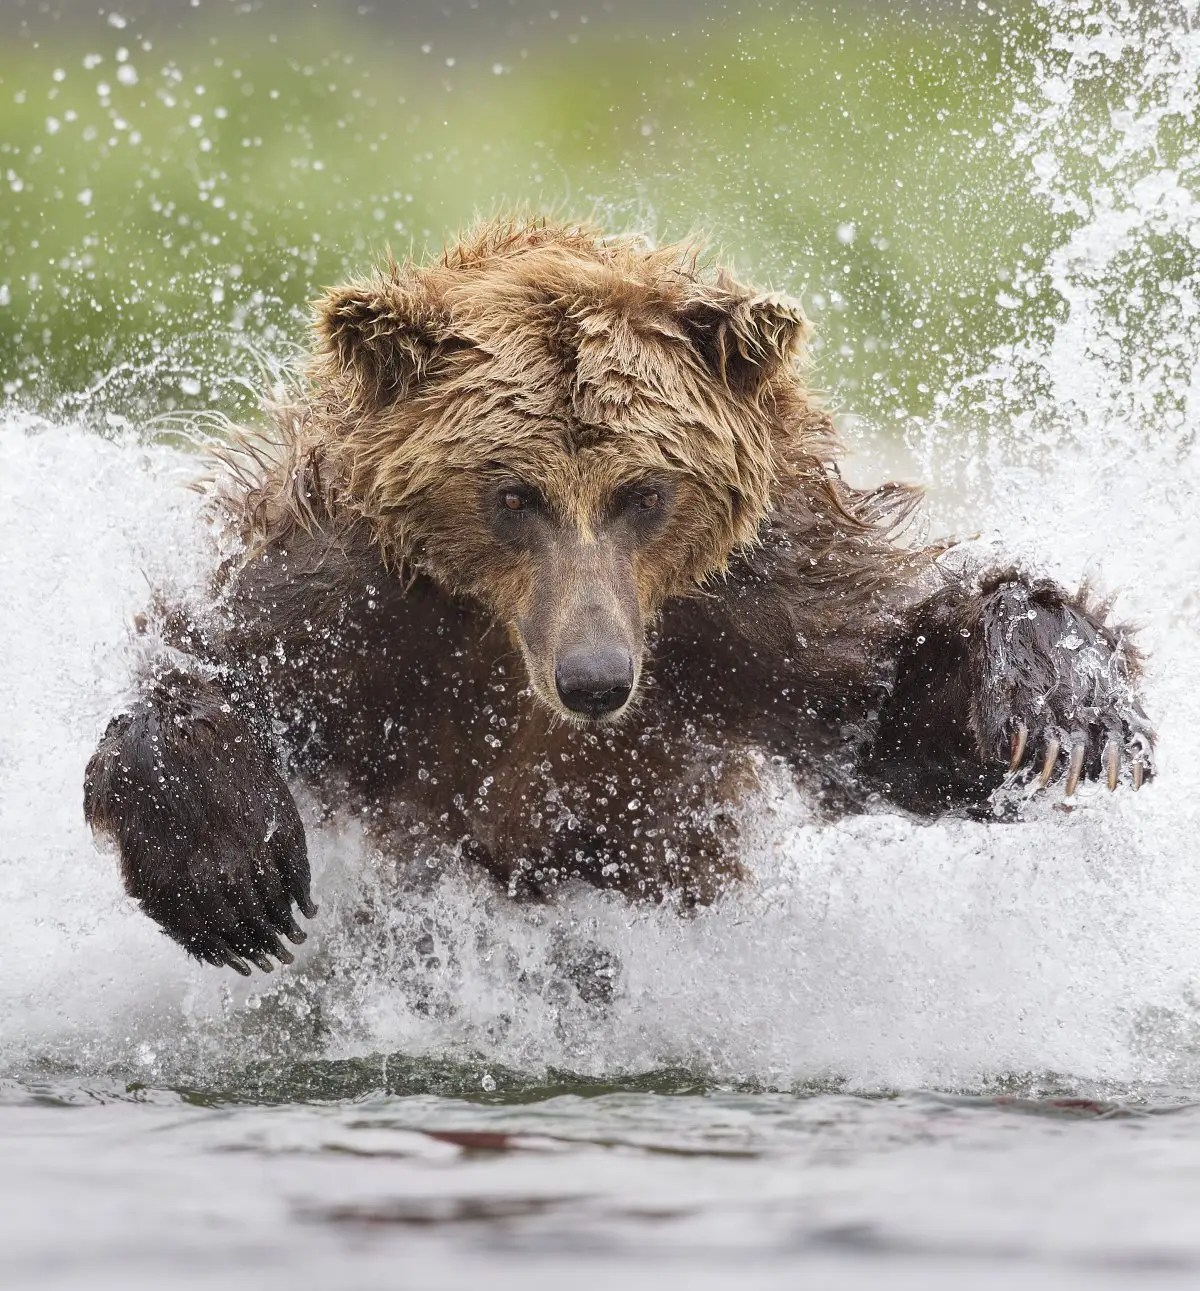 """Tin Man Lee won the Smithsonian's """"Nature's Best Photography"""" competition with this shot from Alaska's Katmai National Park of a Grizzly Bear pouncing through icy waters."""